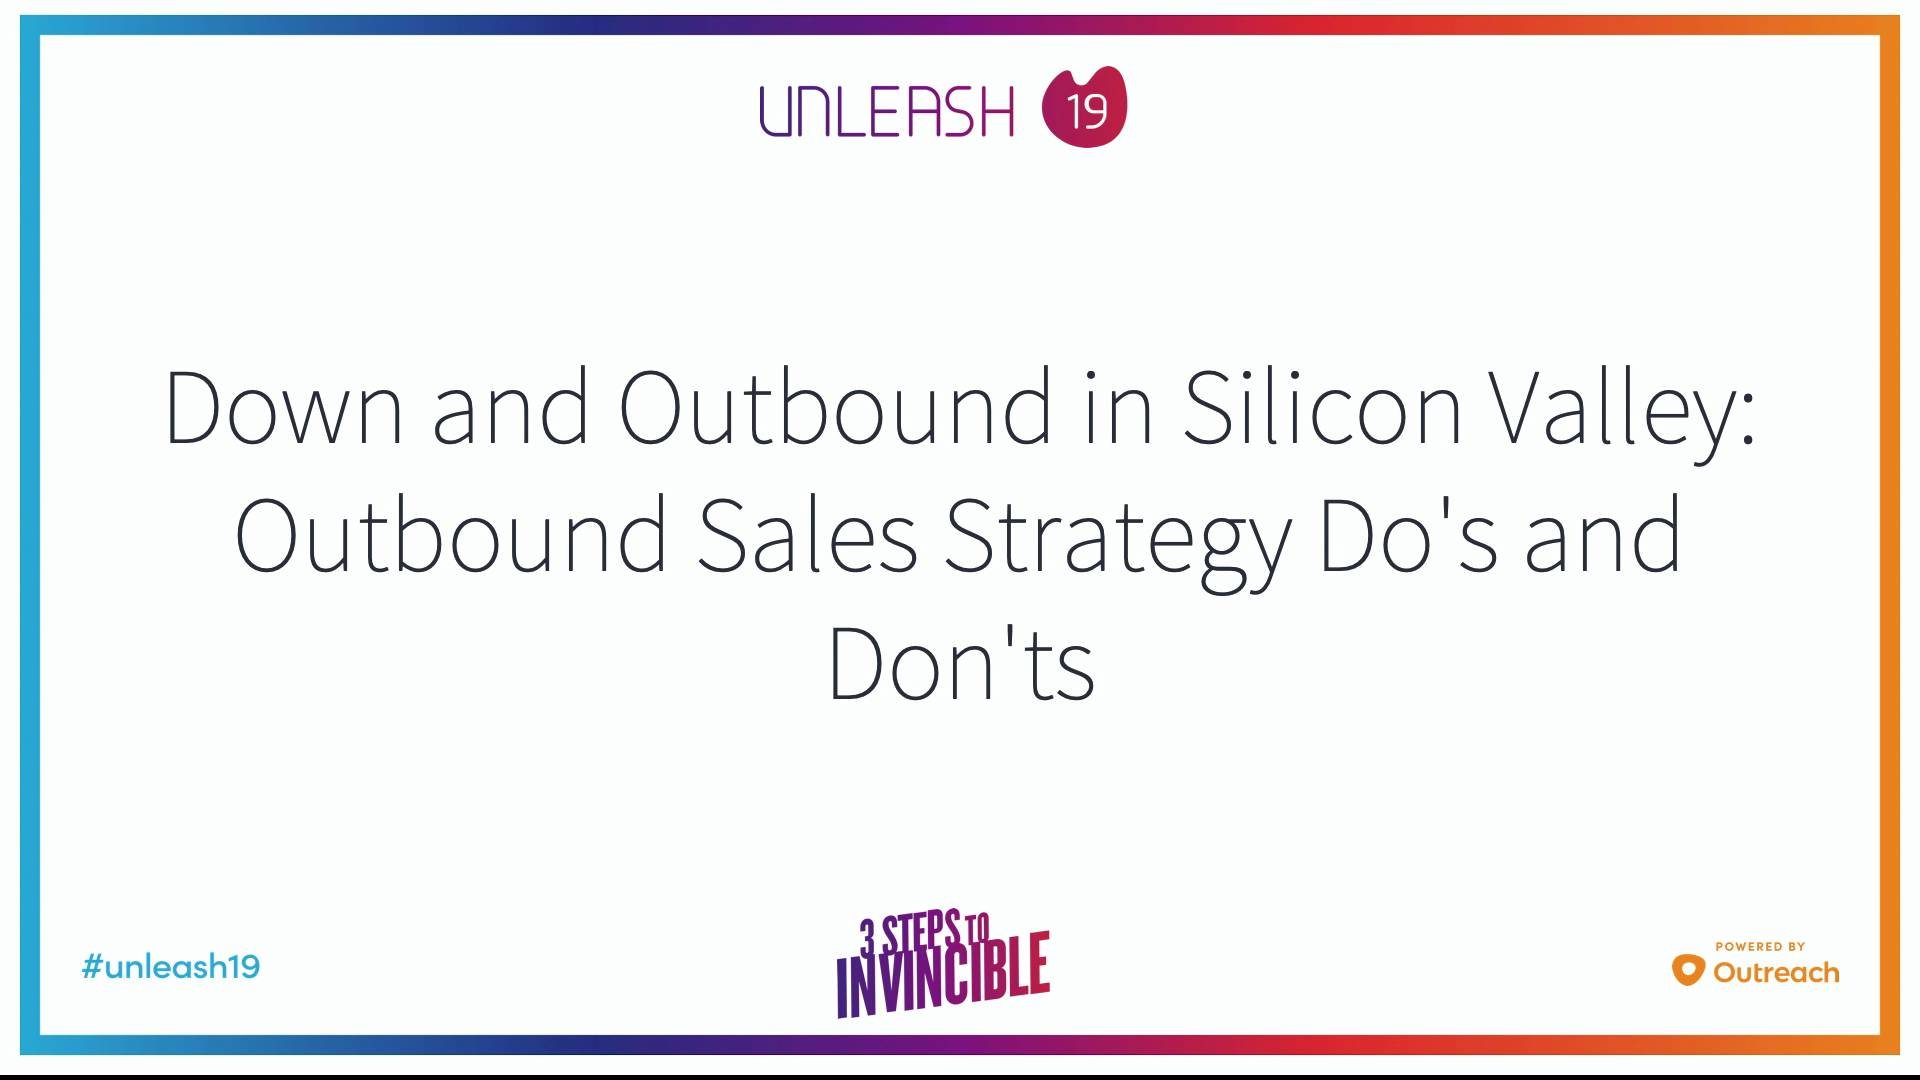 Down and Outbound in Silicon Valley Outbound Sales Strategy Do's and Don'ts - Chase Lindsley, Steve Pacinelli, Lauren Bailey, Kevin Warner